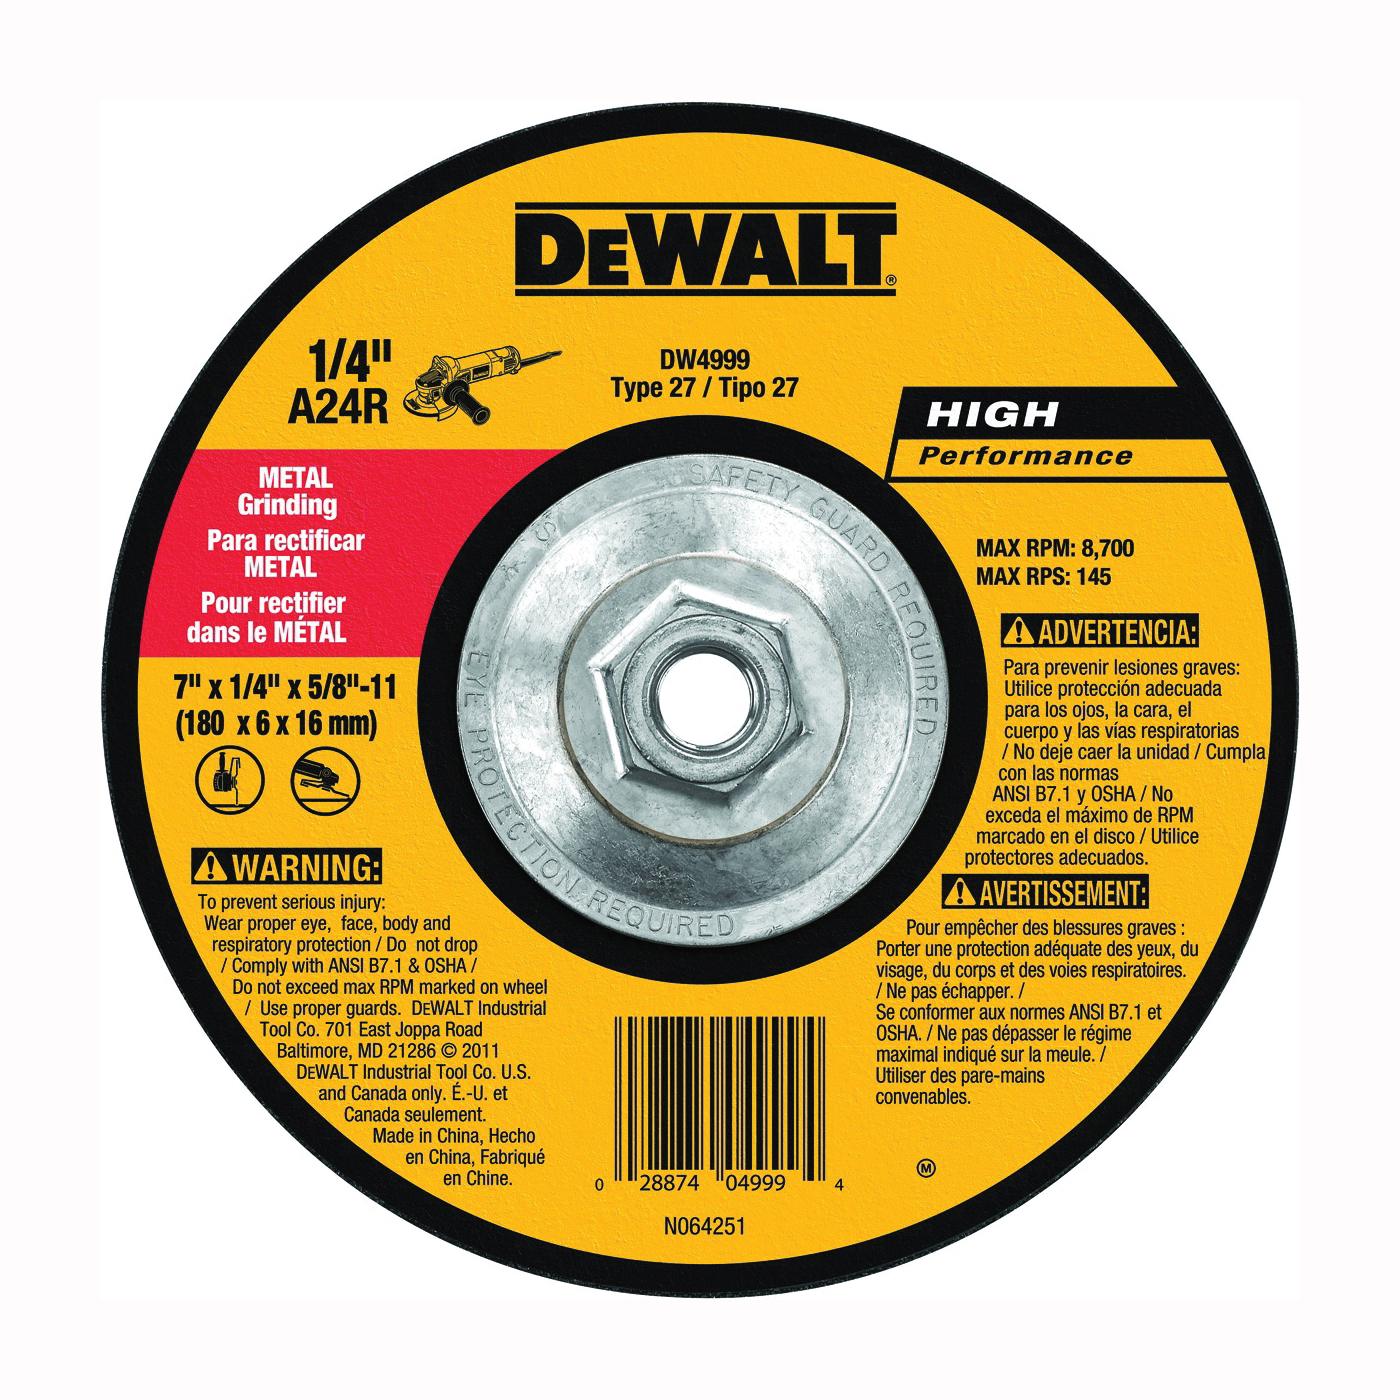 Picture of DeWALT DW4999 Grinding Wheel, 7 in Dia, 1/4 in Thick, 5/8-11 in Arbor, 24 Grit, Aluminum Oxide Abrasive